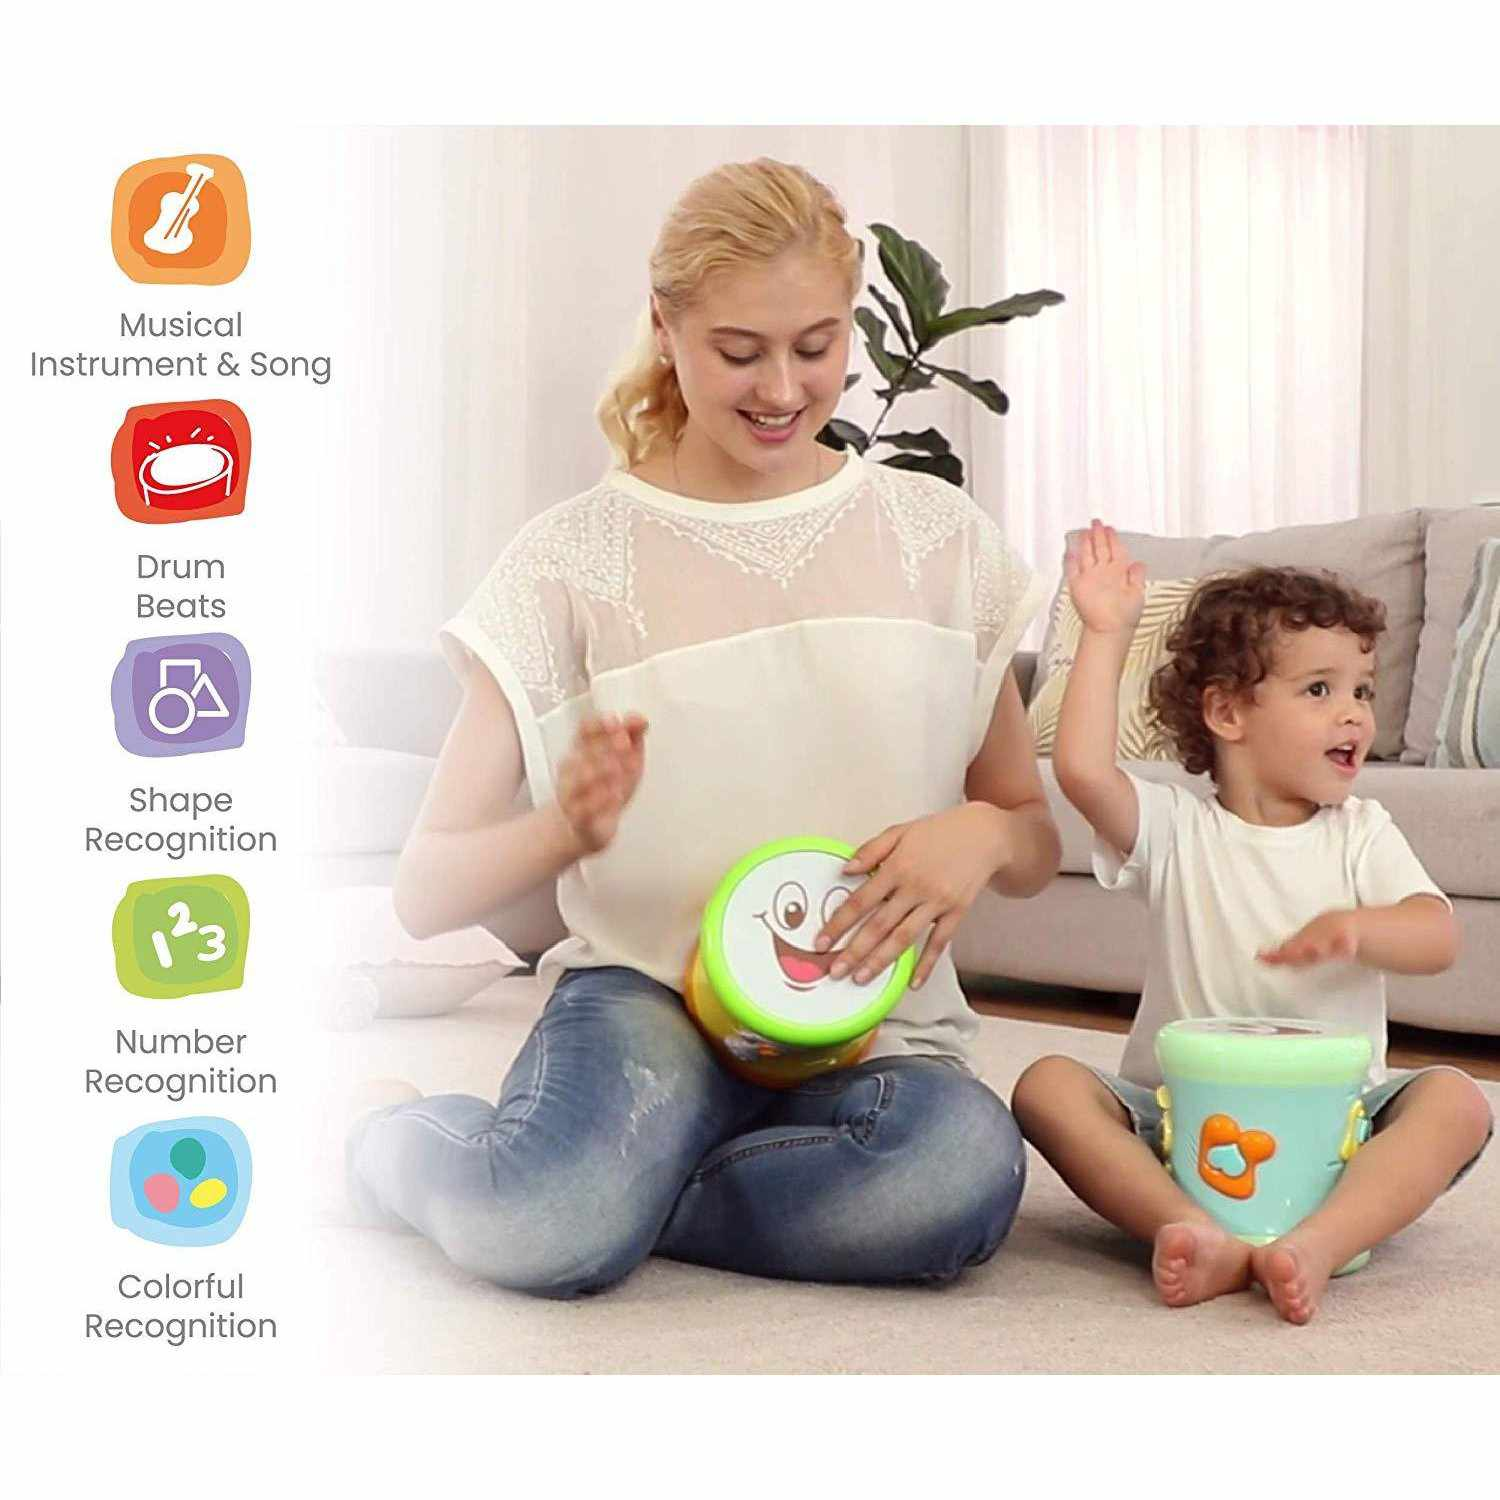 Orapple Toys Musical Learning Drum Toy For Kids